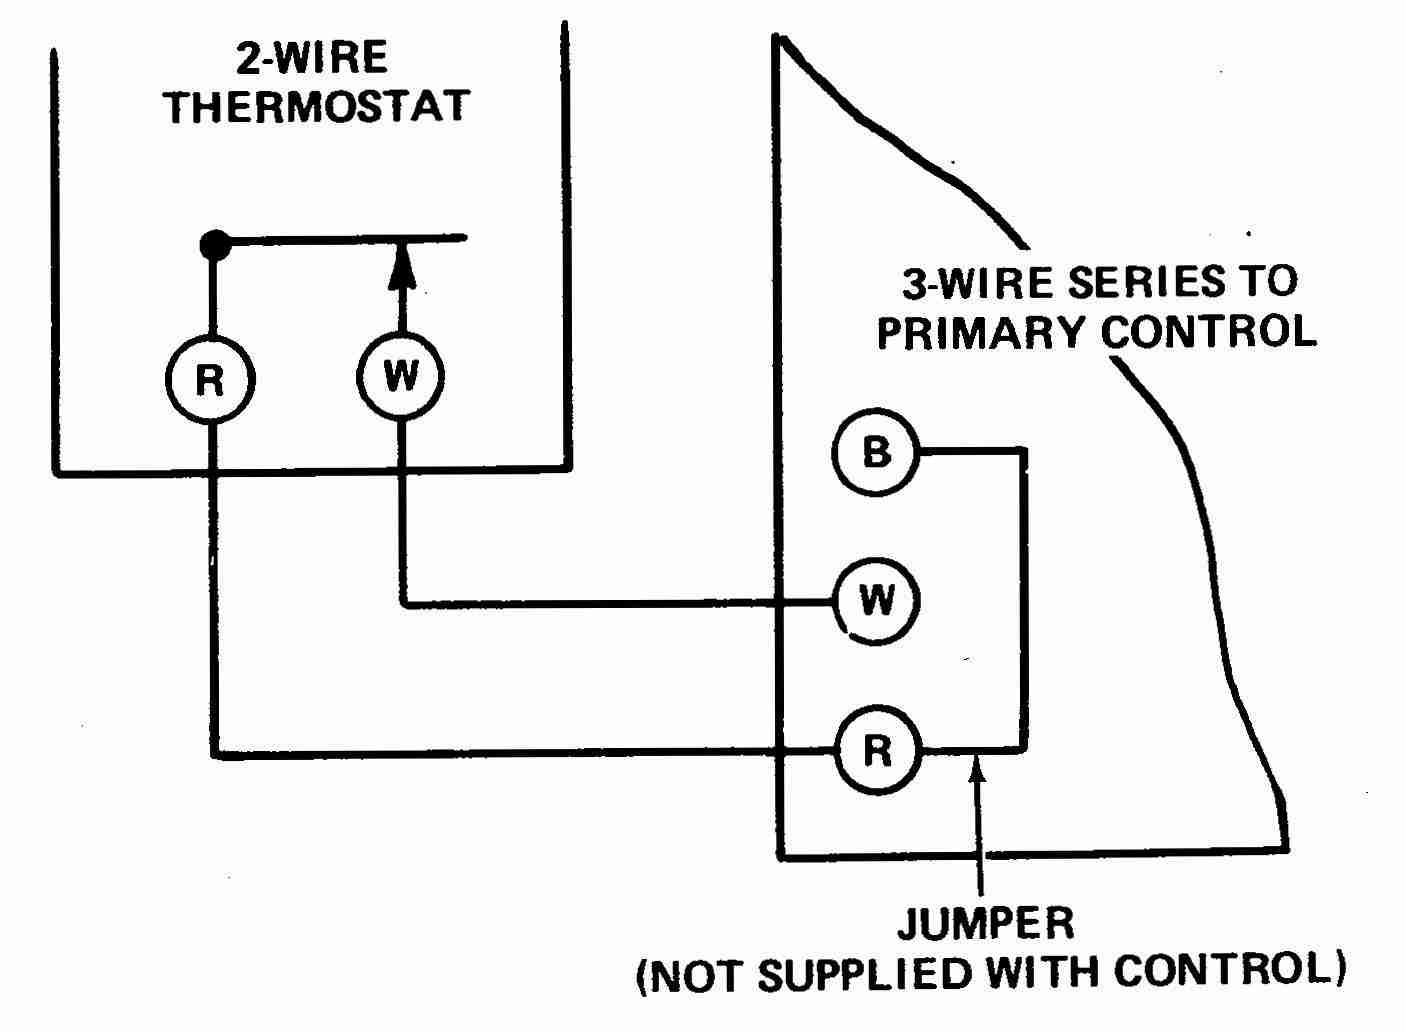 How Wire A White Rodgers Room Thermostat, White Rodgers Thermostat - White Rodgers Thermostat Wiring Diagram